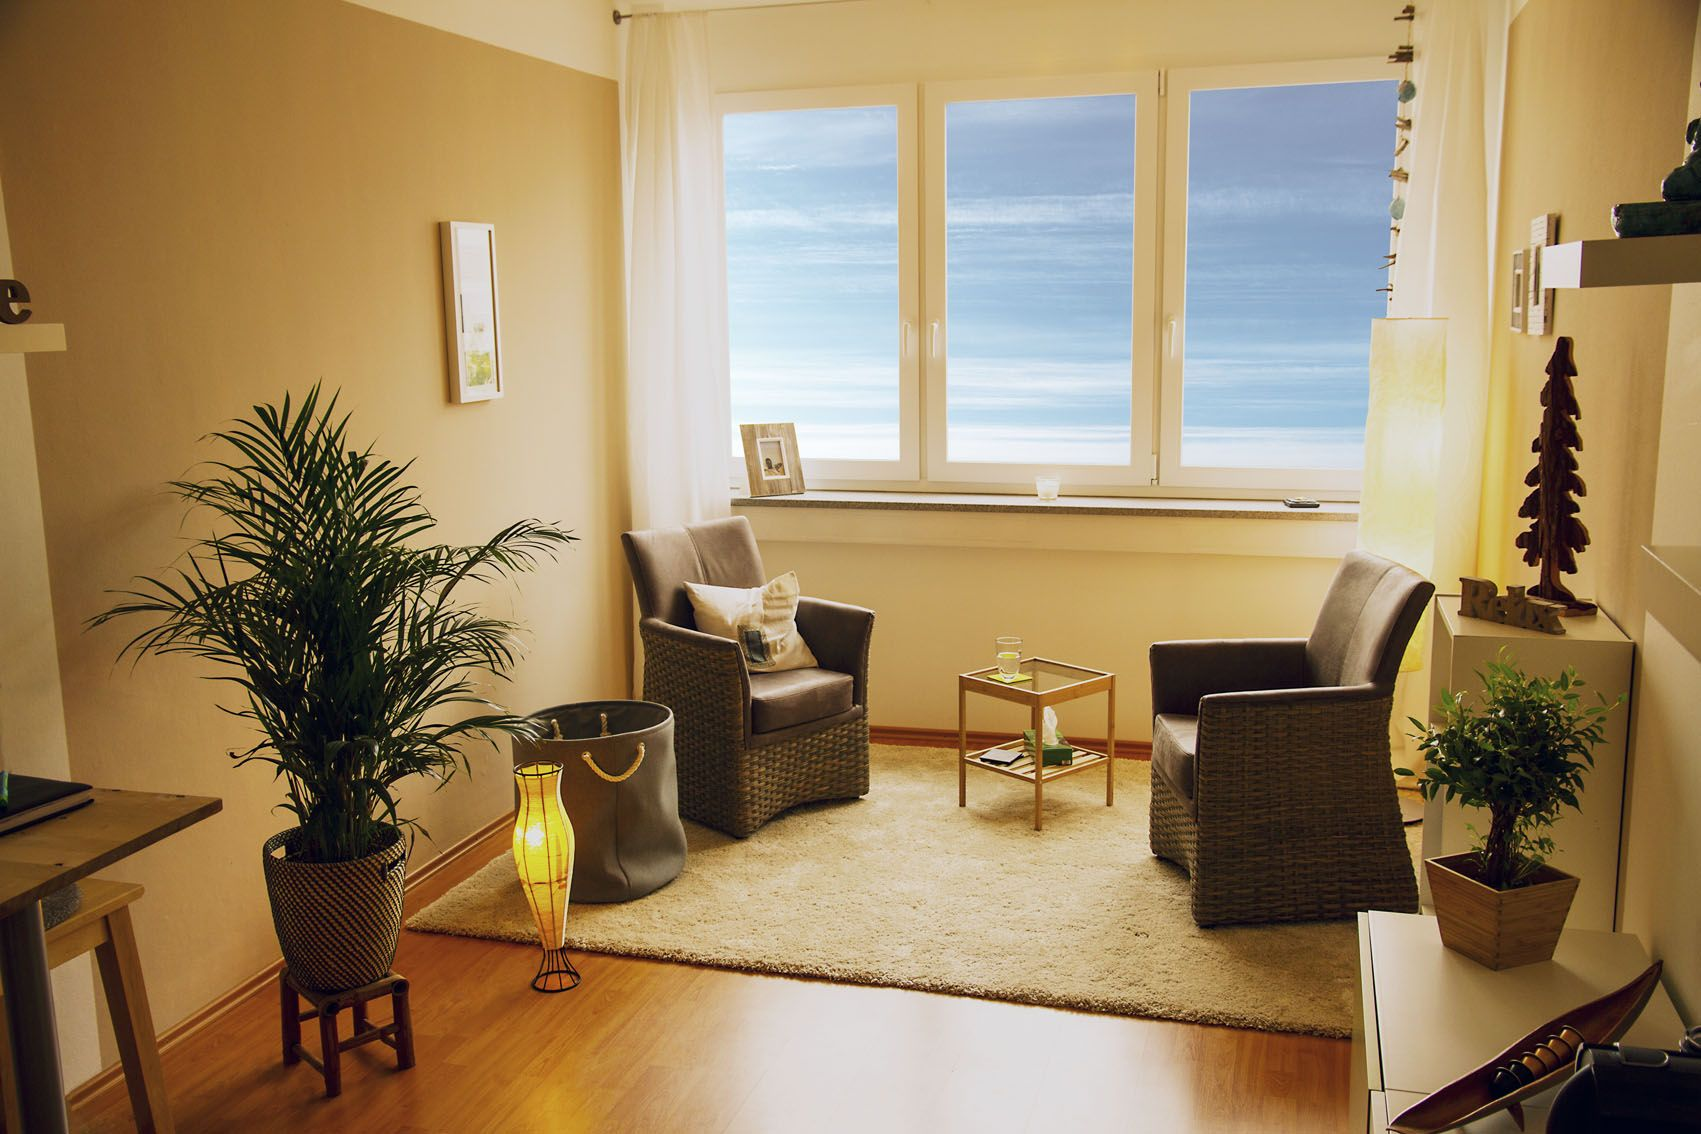 Therapieraum 2 Therapy Room Ideas Room Counselling Room Living